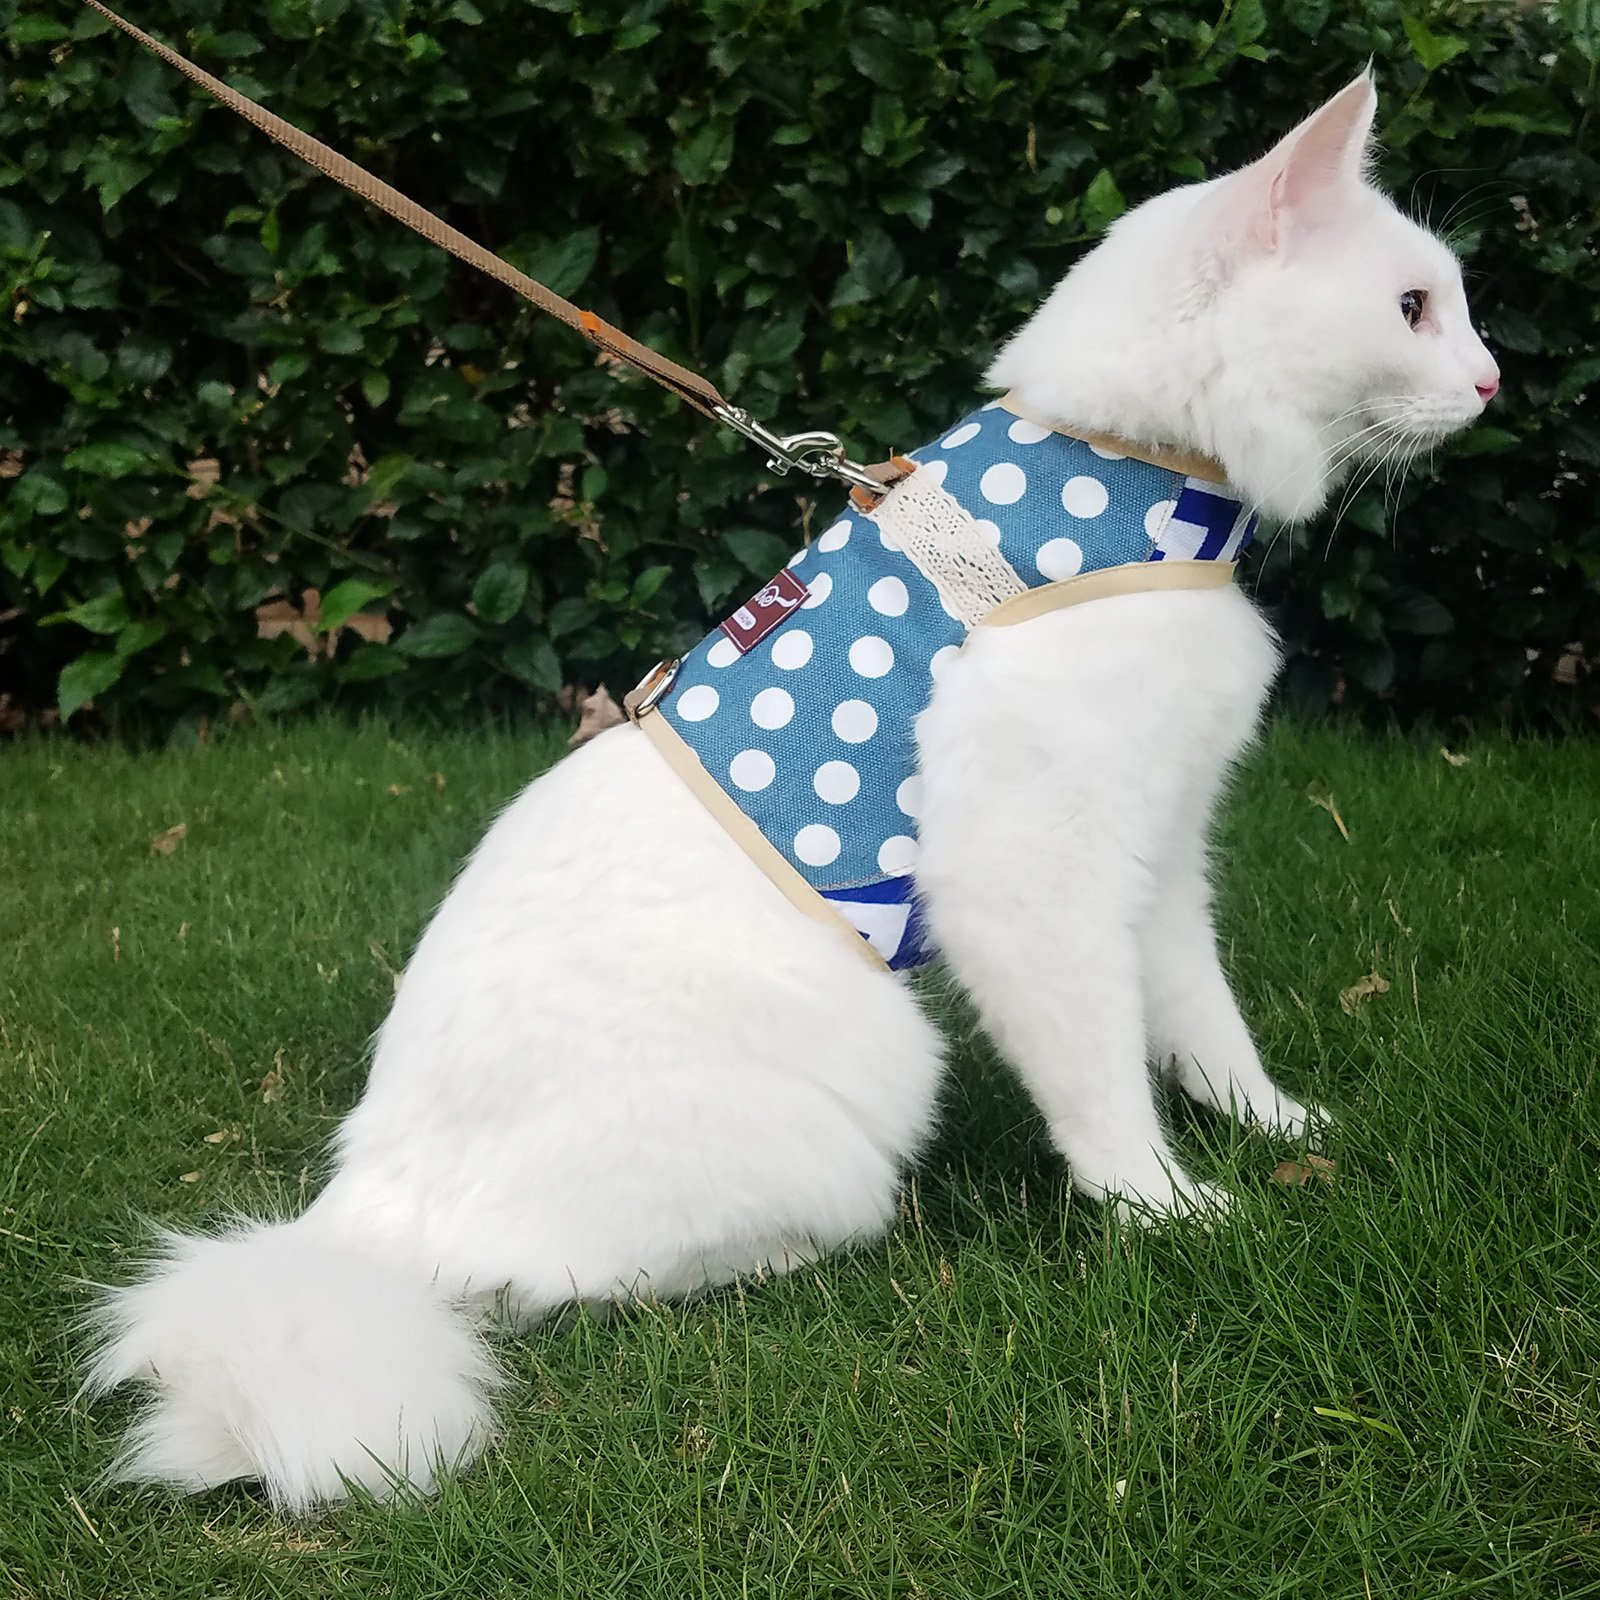 Cat / Dog Walking Jackets Padded Vest Cat Harness and Leash Large, Cat/Dog Harness and Leash for Walking Escape Proof